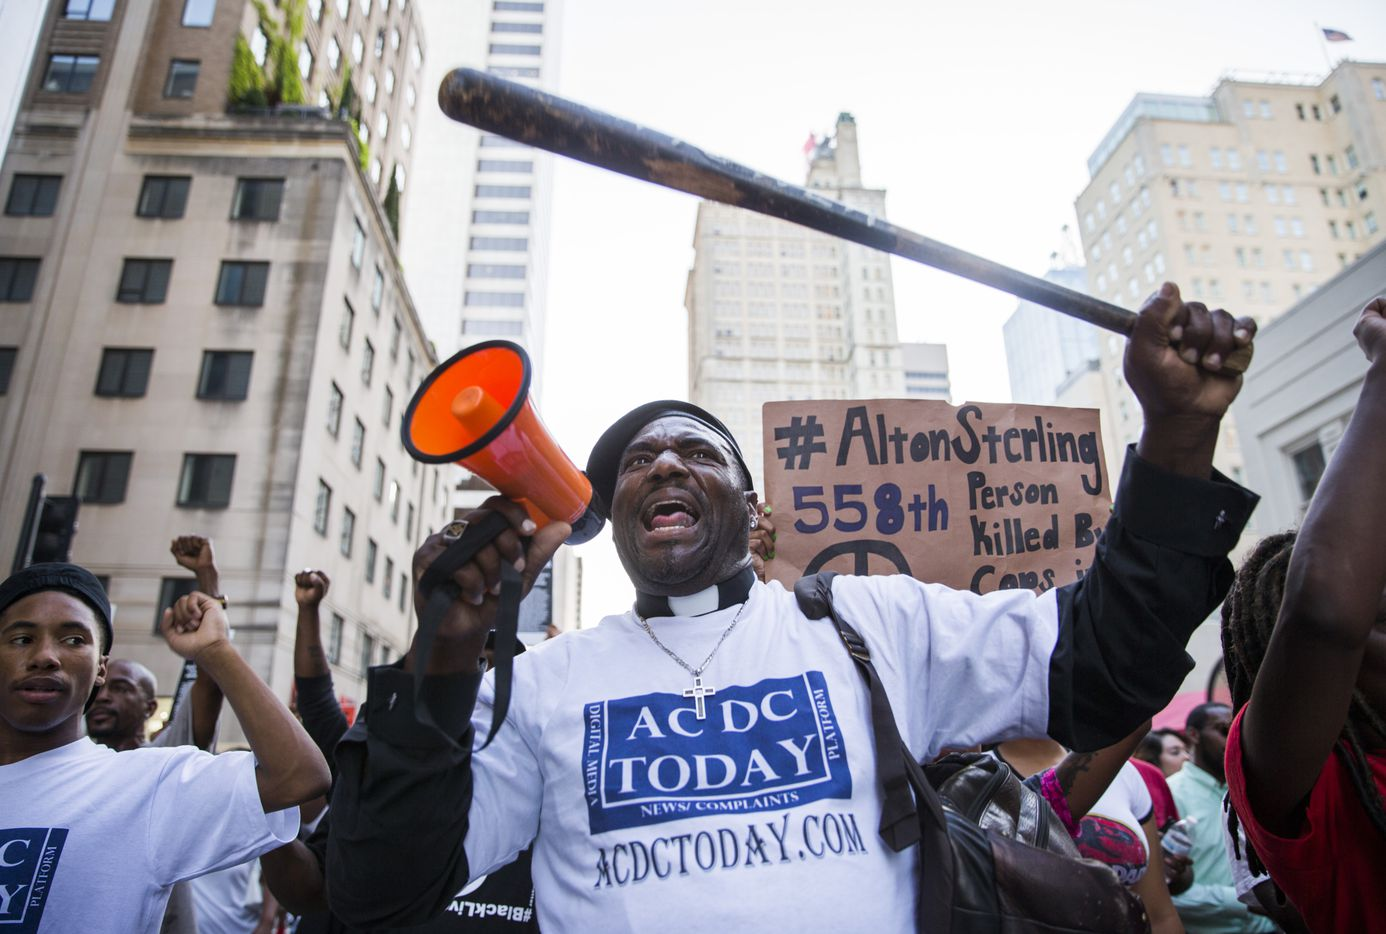 Ernest Walker and other protesters marched through downtown Dallas before a gunman opened fire on July 7.